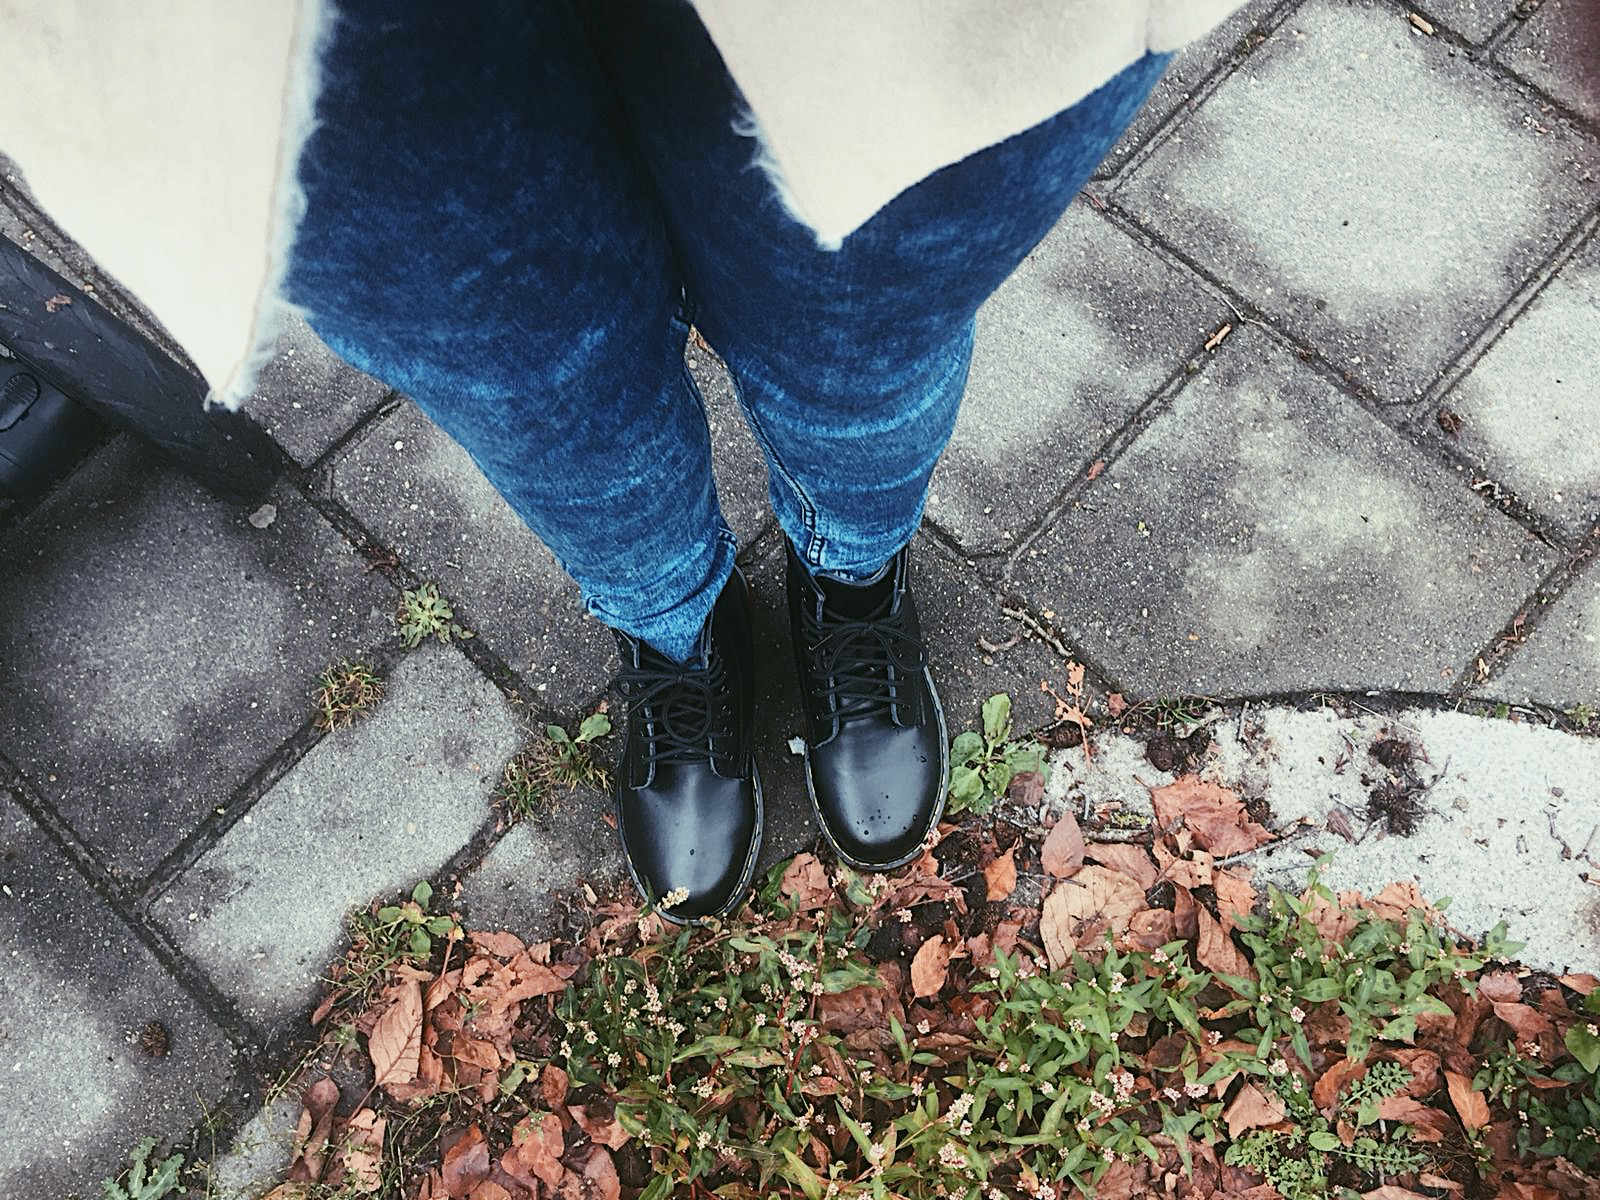 Mijn week in foto's 3 dr martens look a like